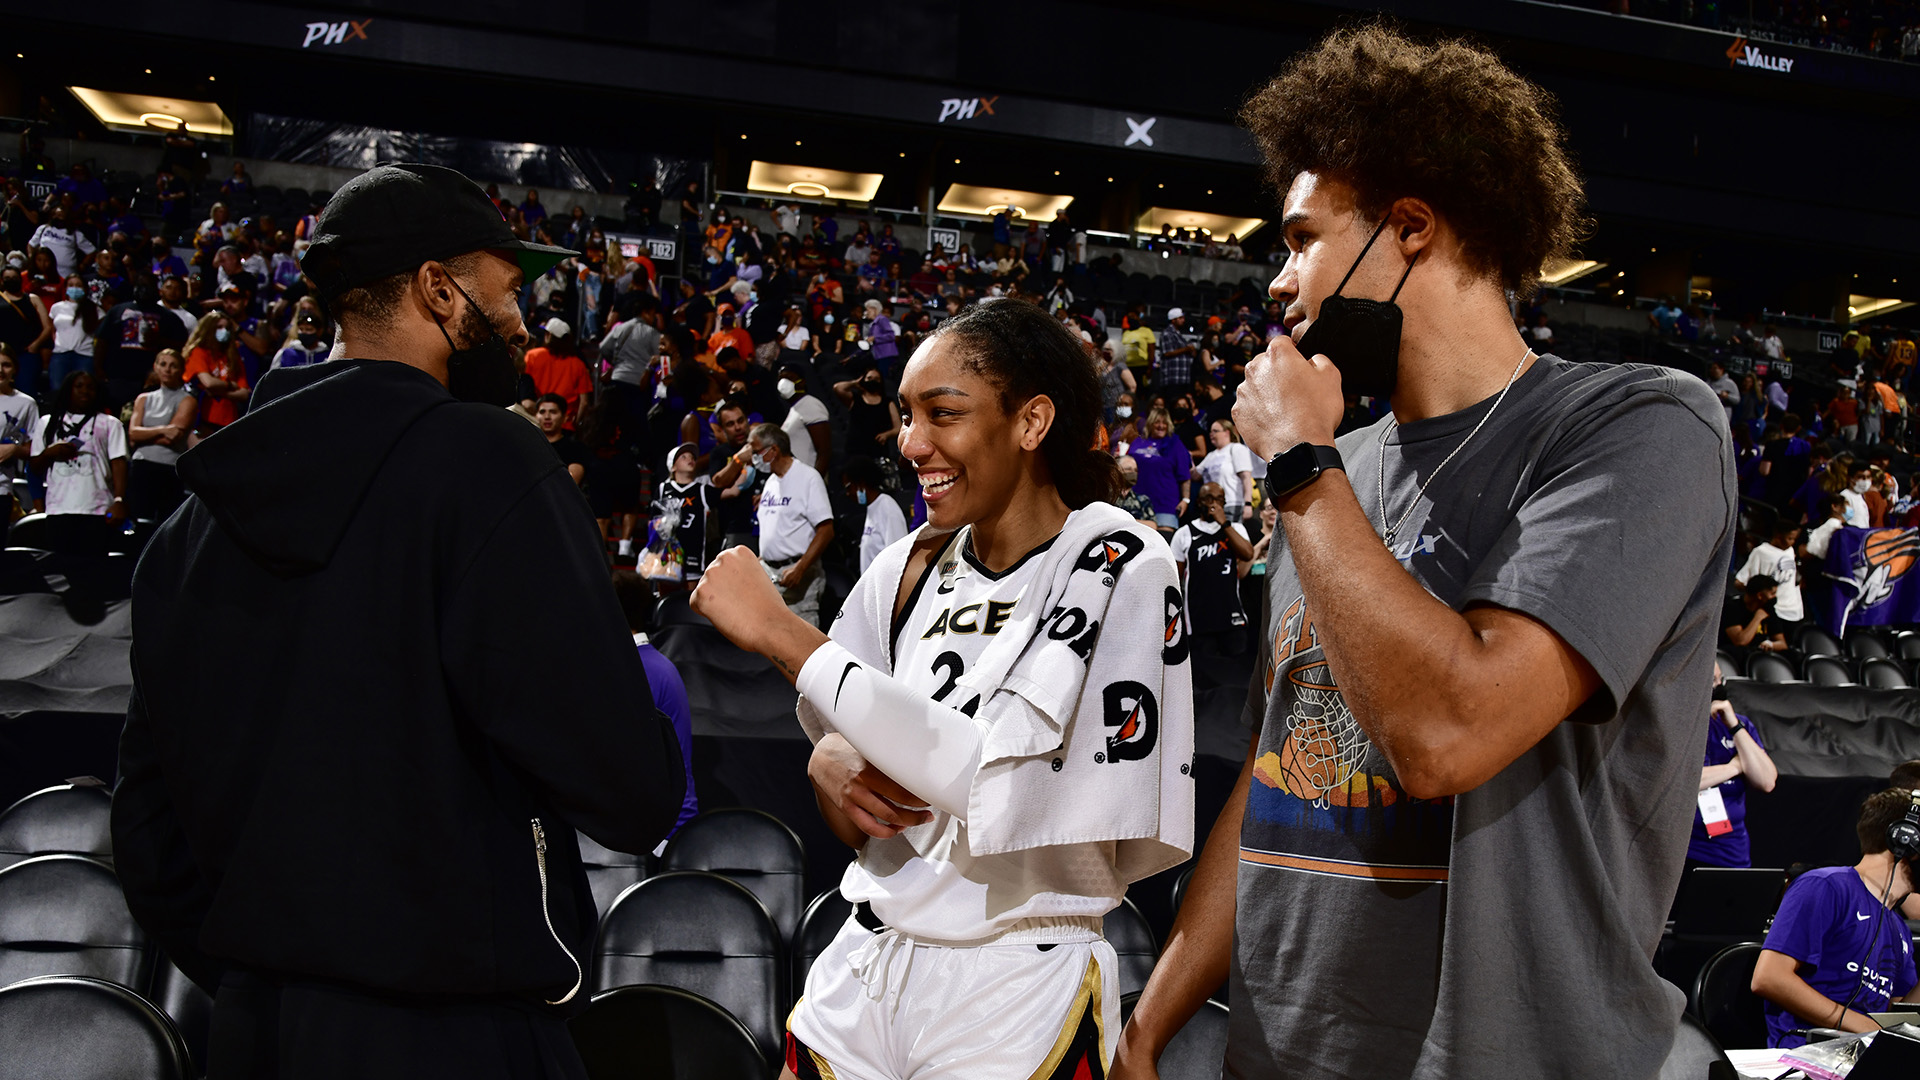 Photos: Chicago Bulls, Phoenix Suns support Sky and Mercury in WNBA semifinals